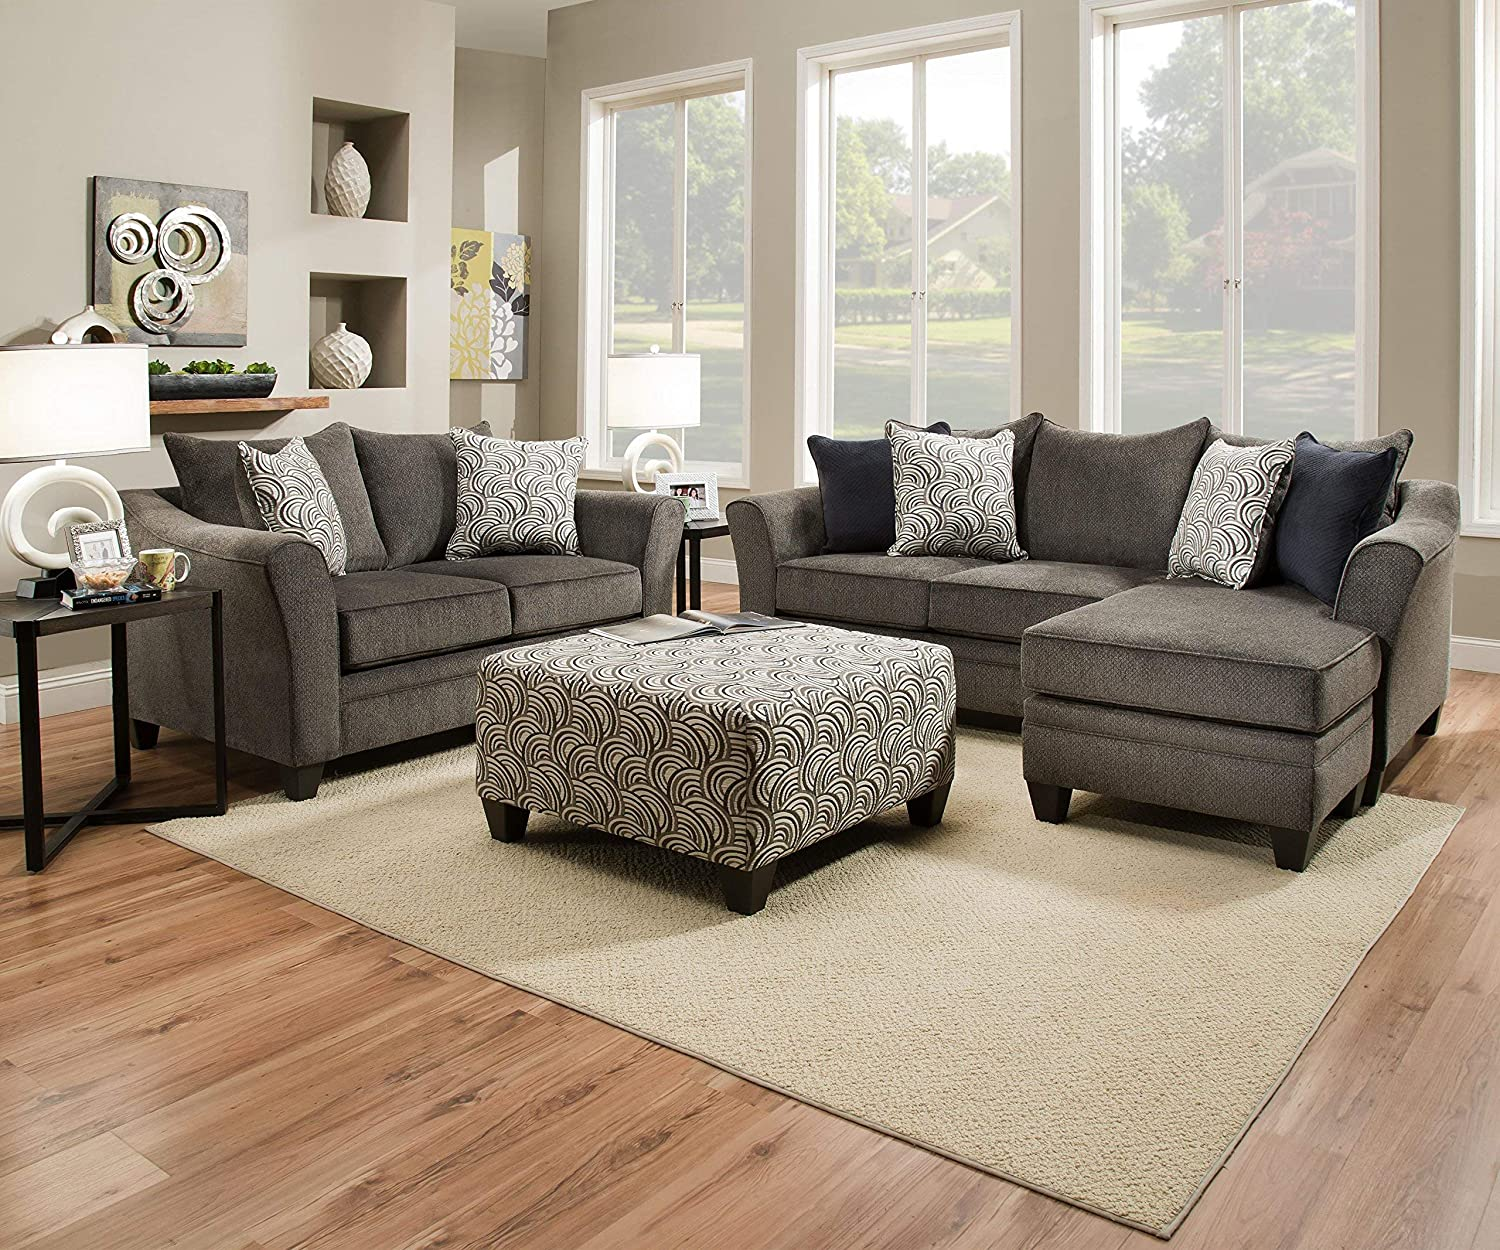 Simmons Upholstery 6485-02 Pewter Albany Loveseat,